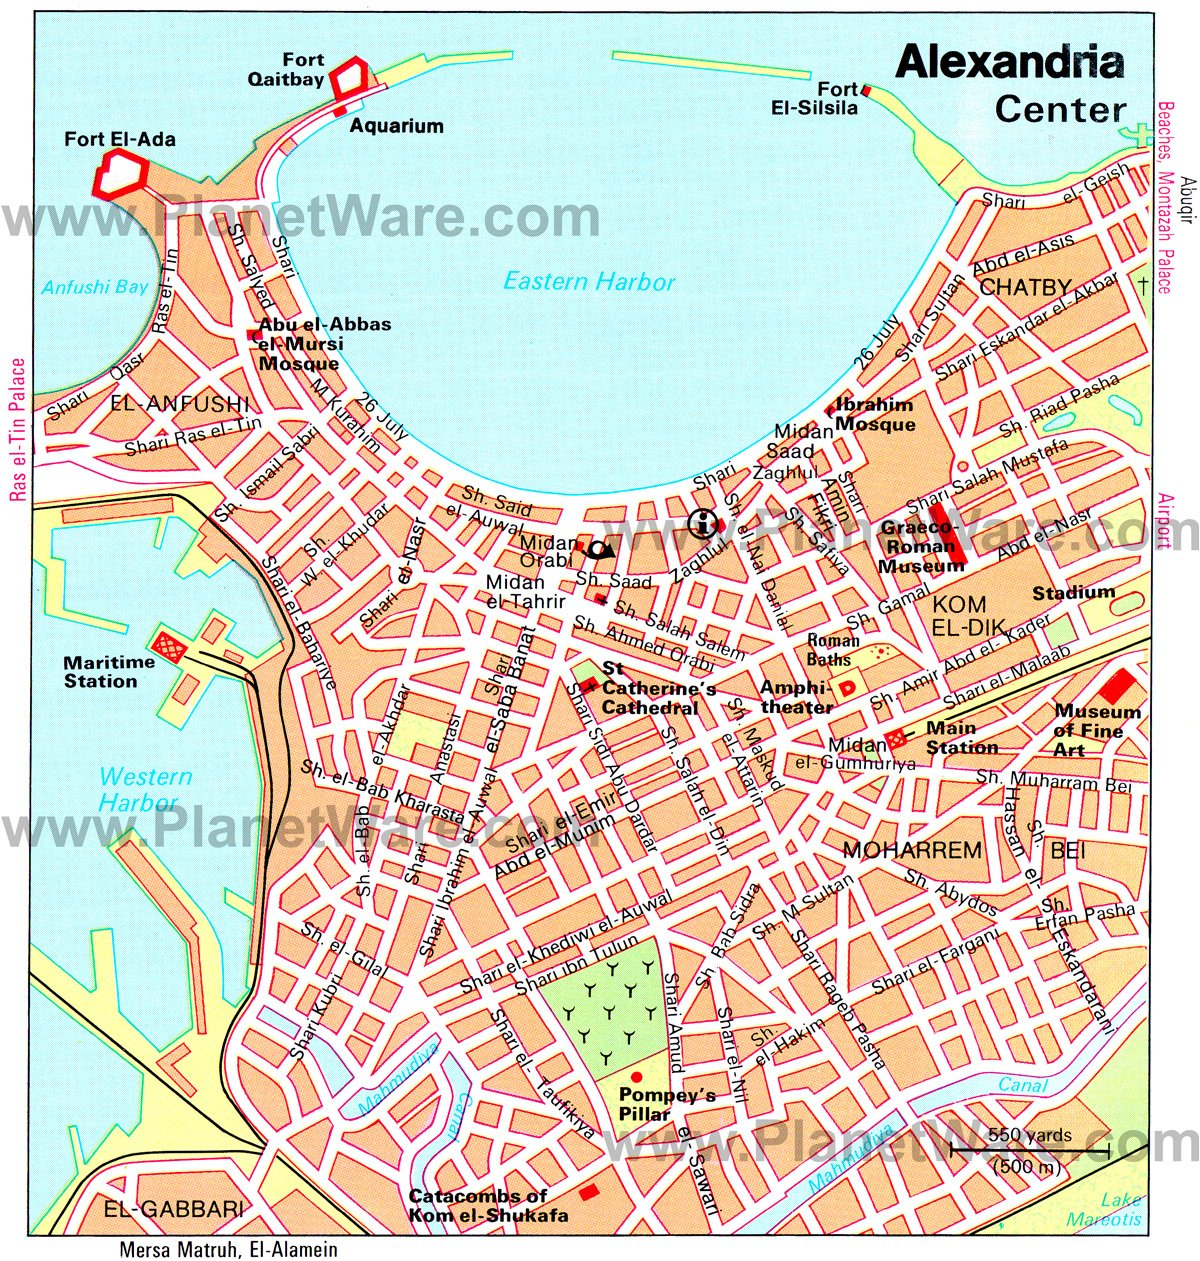 14 Top Tourist Attractions in Alexandria Easy Day Trips PlanetWare